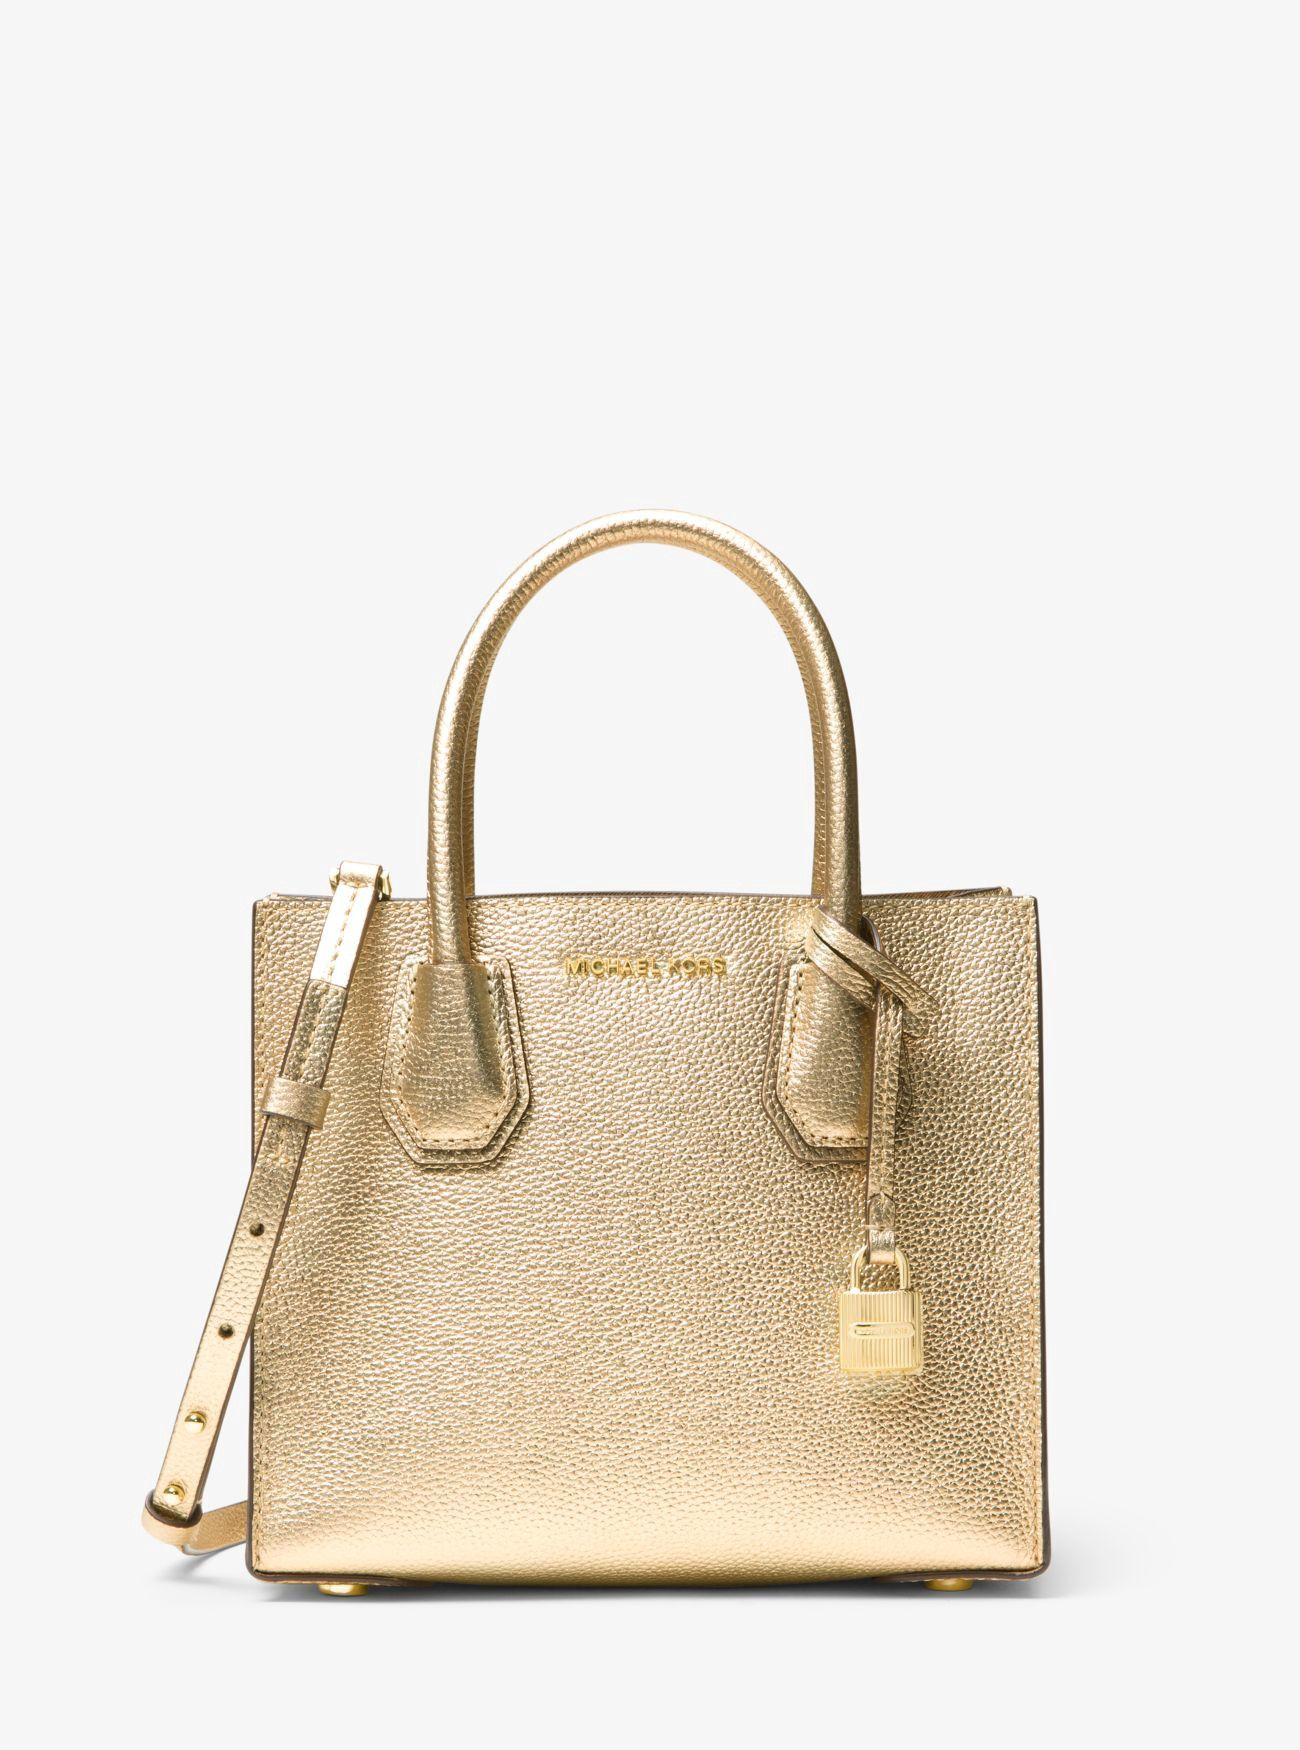 MICHAEL KORS Mercer Metallic Leather Crossbody.  michaelkors  bags   polyester  crossbody  leather  lining  metallic  shoulder bags  hand bags   e258e2edec2b2